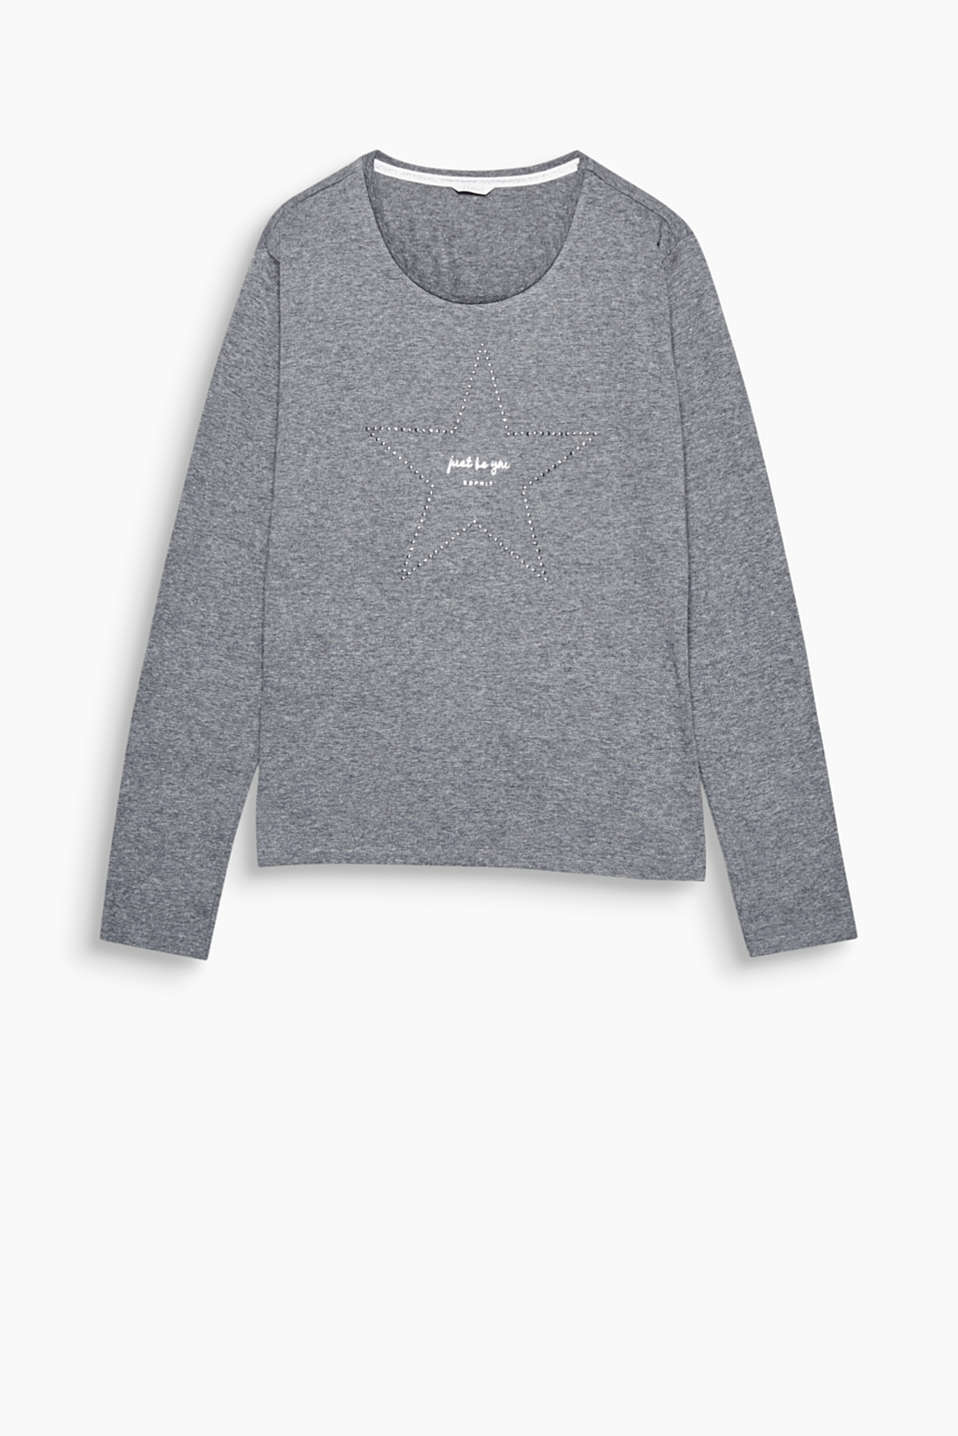 Your star! Feeling cosy and relaxed is the name of the game in this soft long sleeve top.